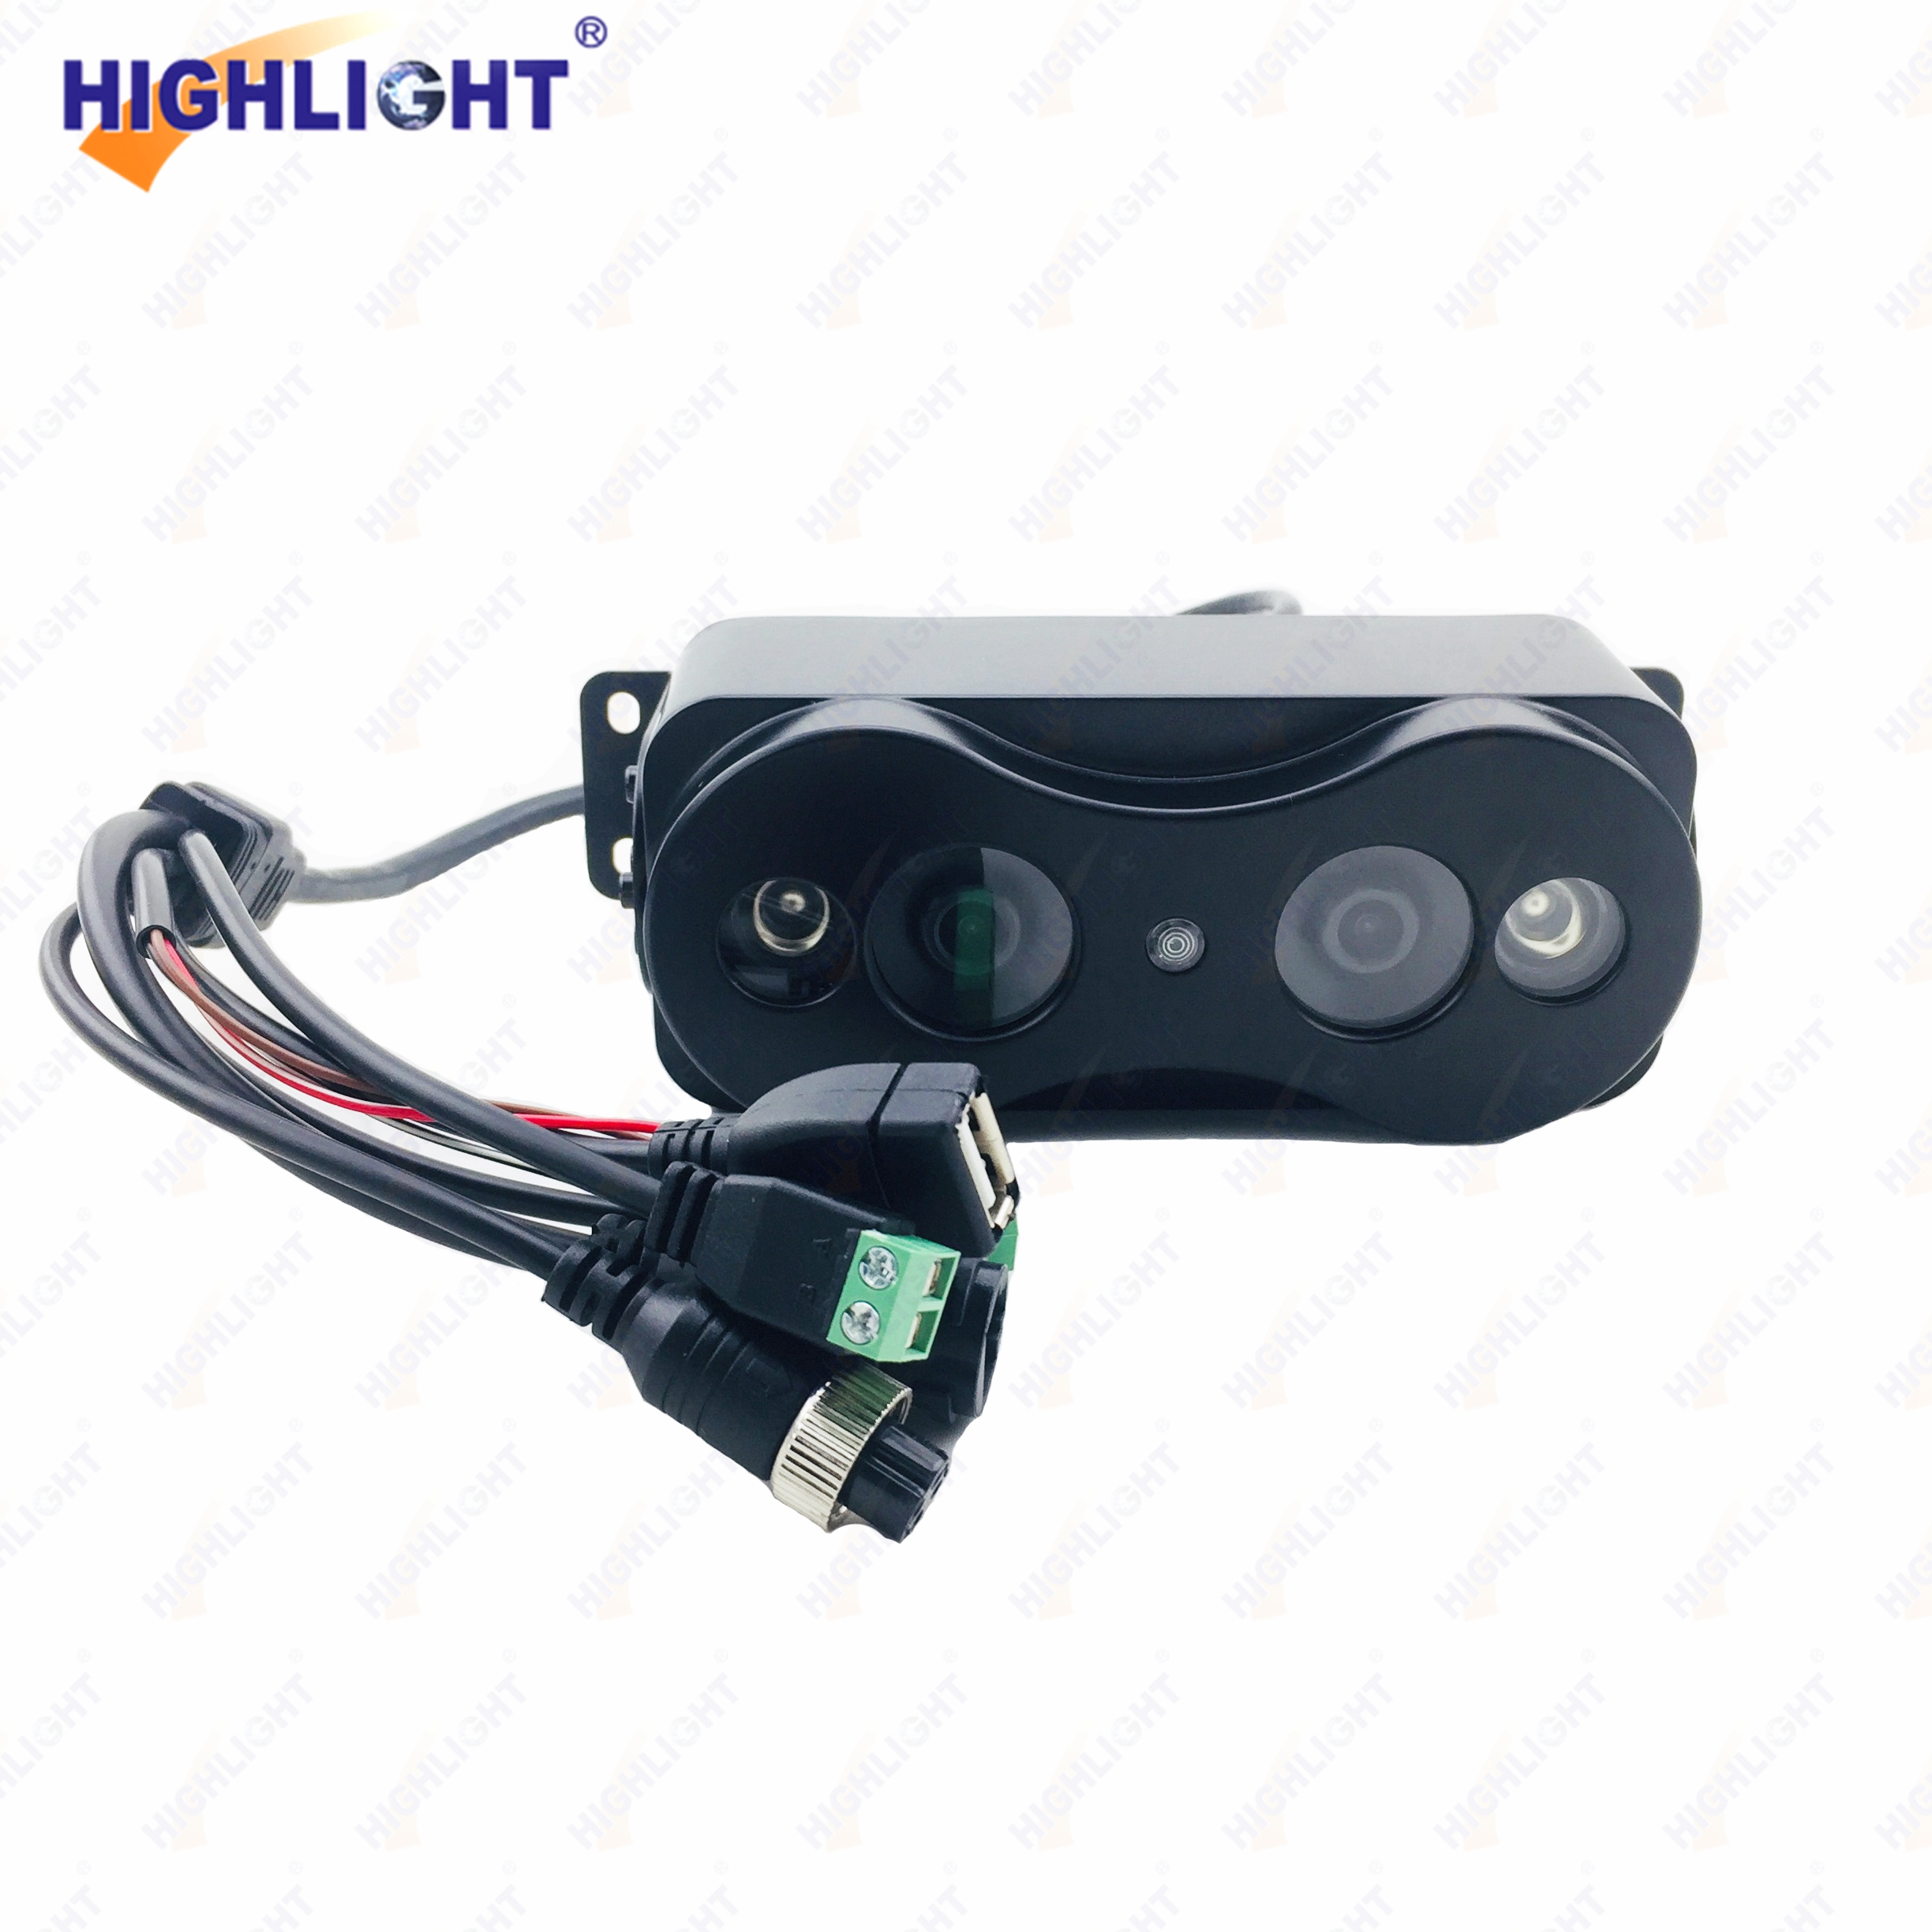 Highlight people counter system HPC005 (Reflective type)/ infrared sensor counter/ Garment shop infrared people flowing counting